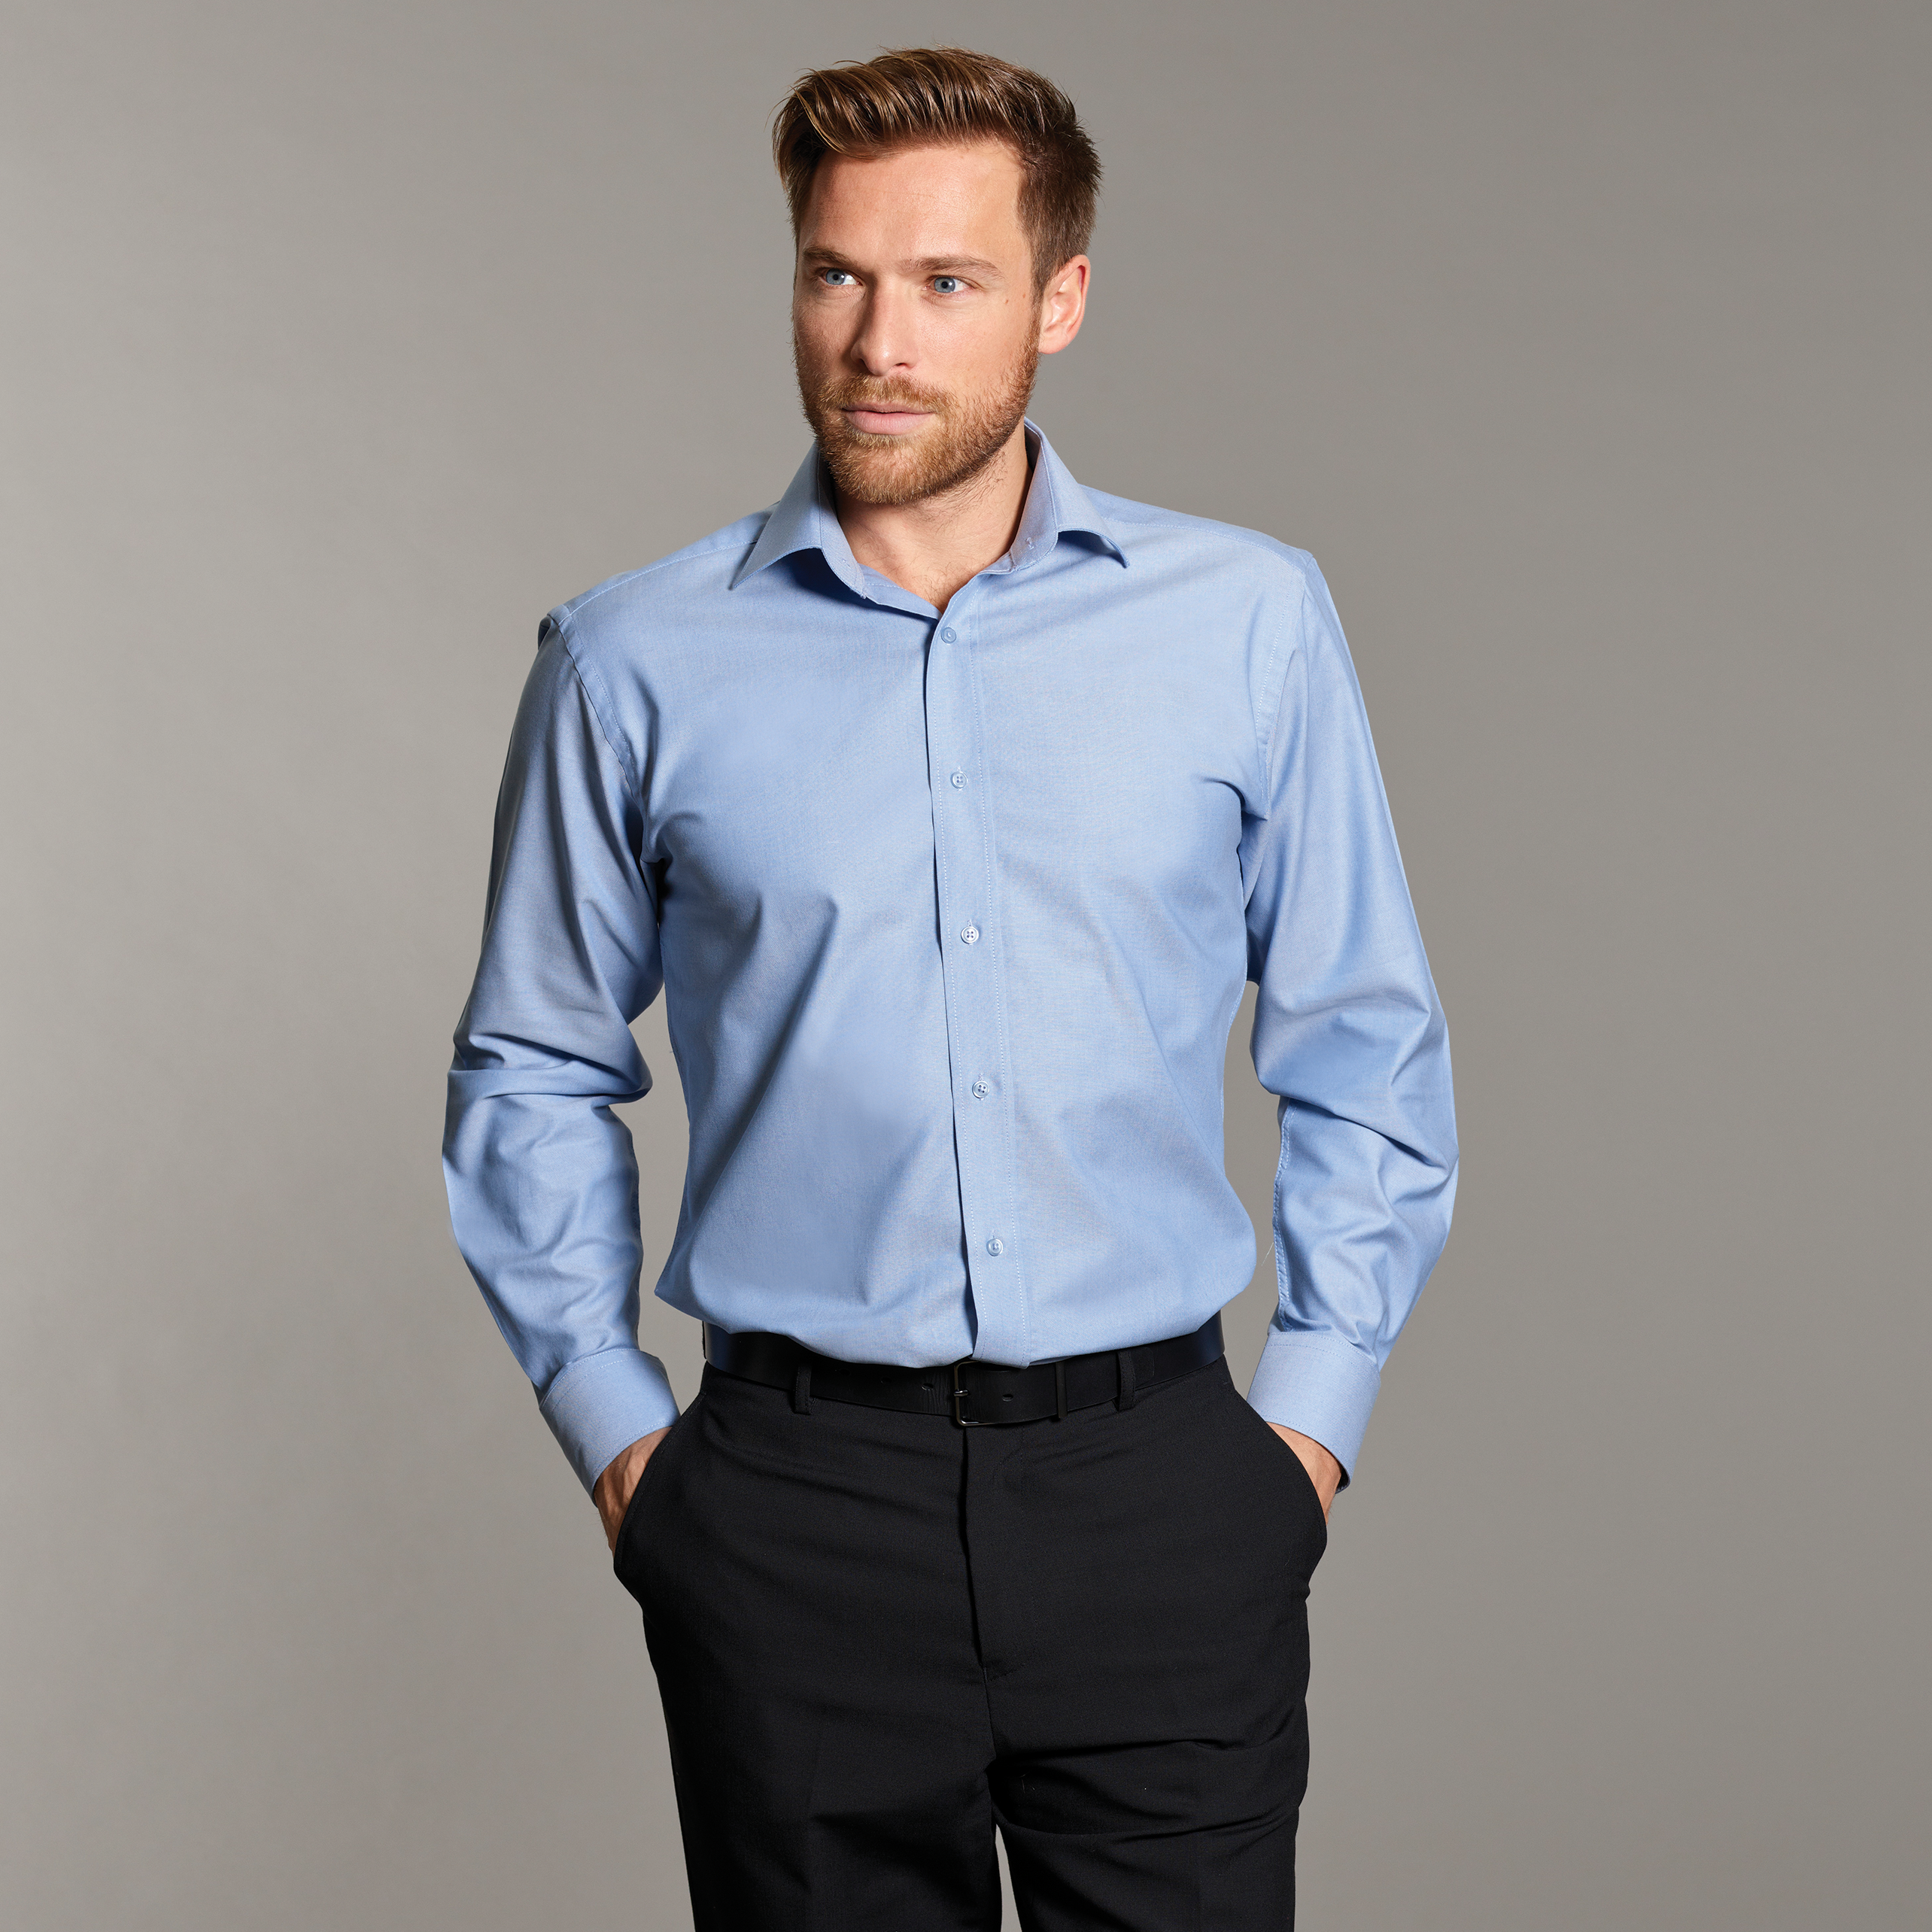 Disley mens oxford shirt with button down collar ht hughes for Mens blue oxford shirt